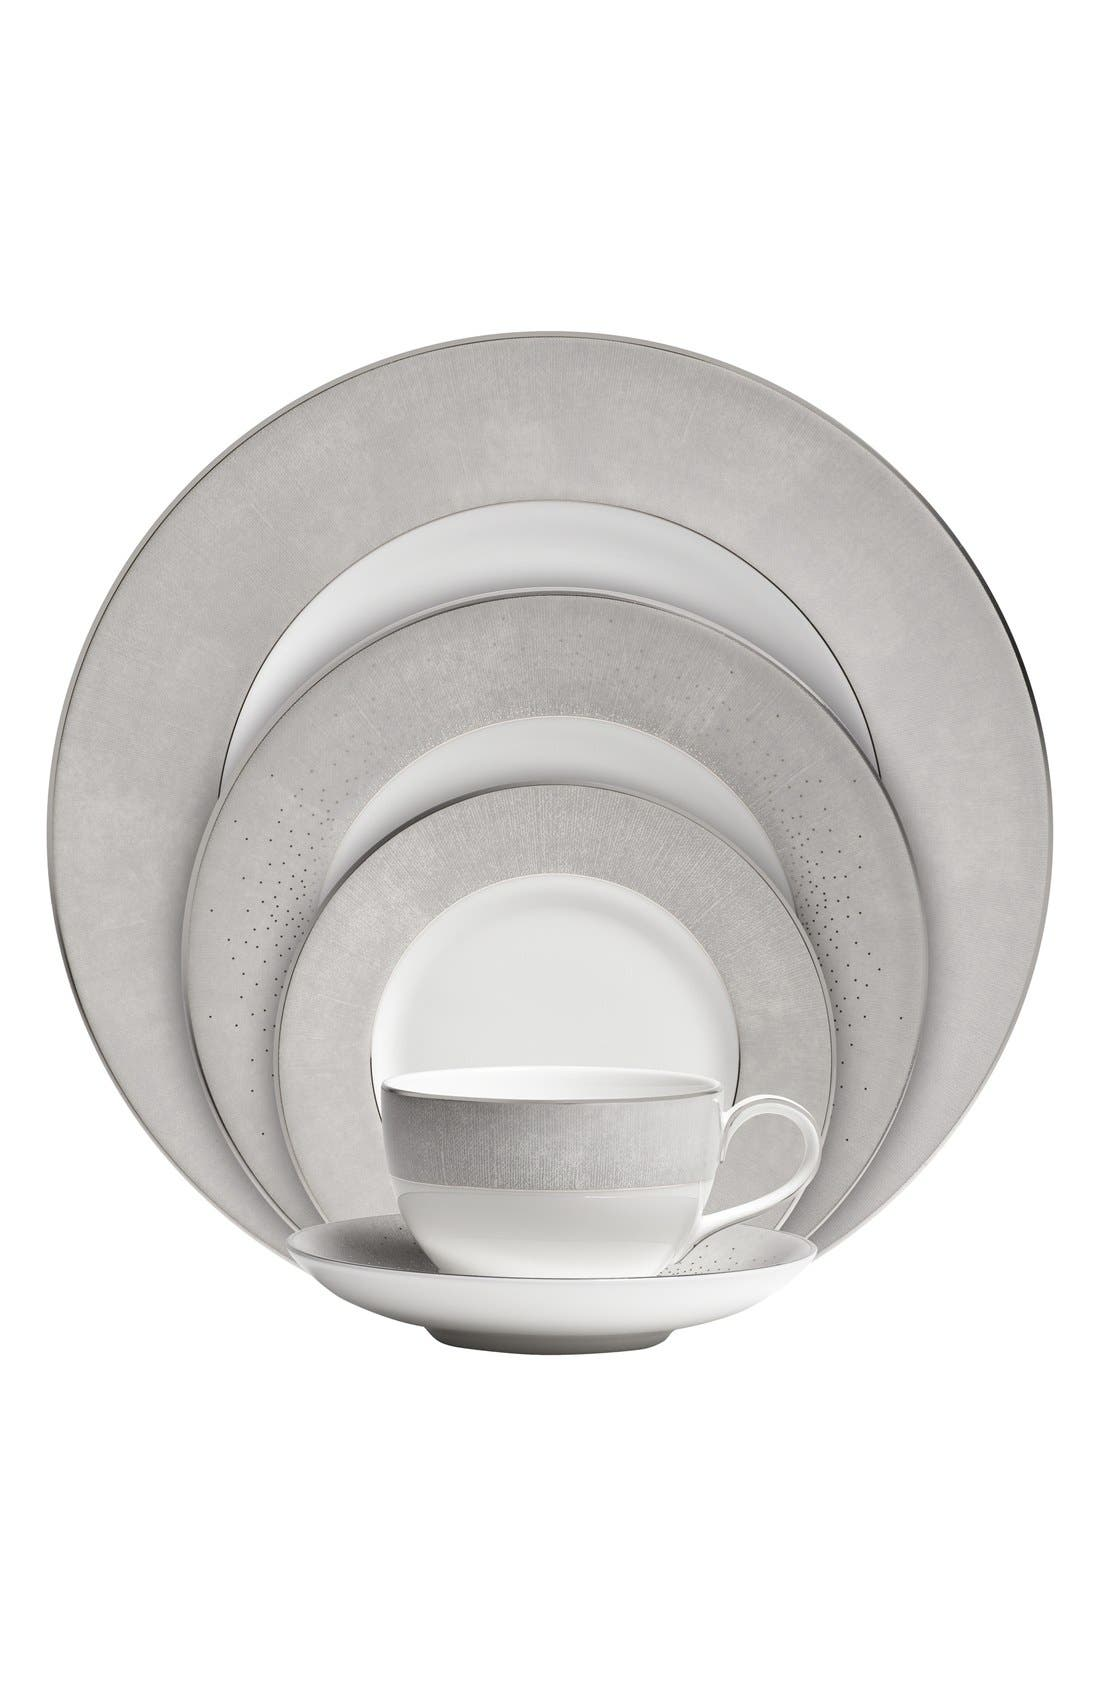 Monique Lhuillier Waterford 'Stardust' 5-Piece Bone China Dinnerware Place Setting